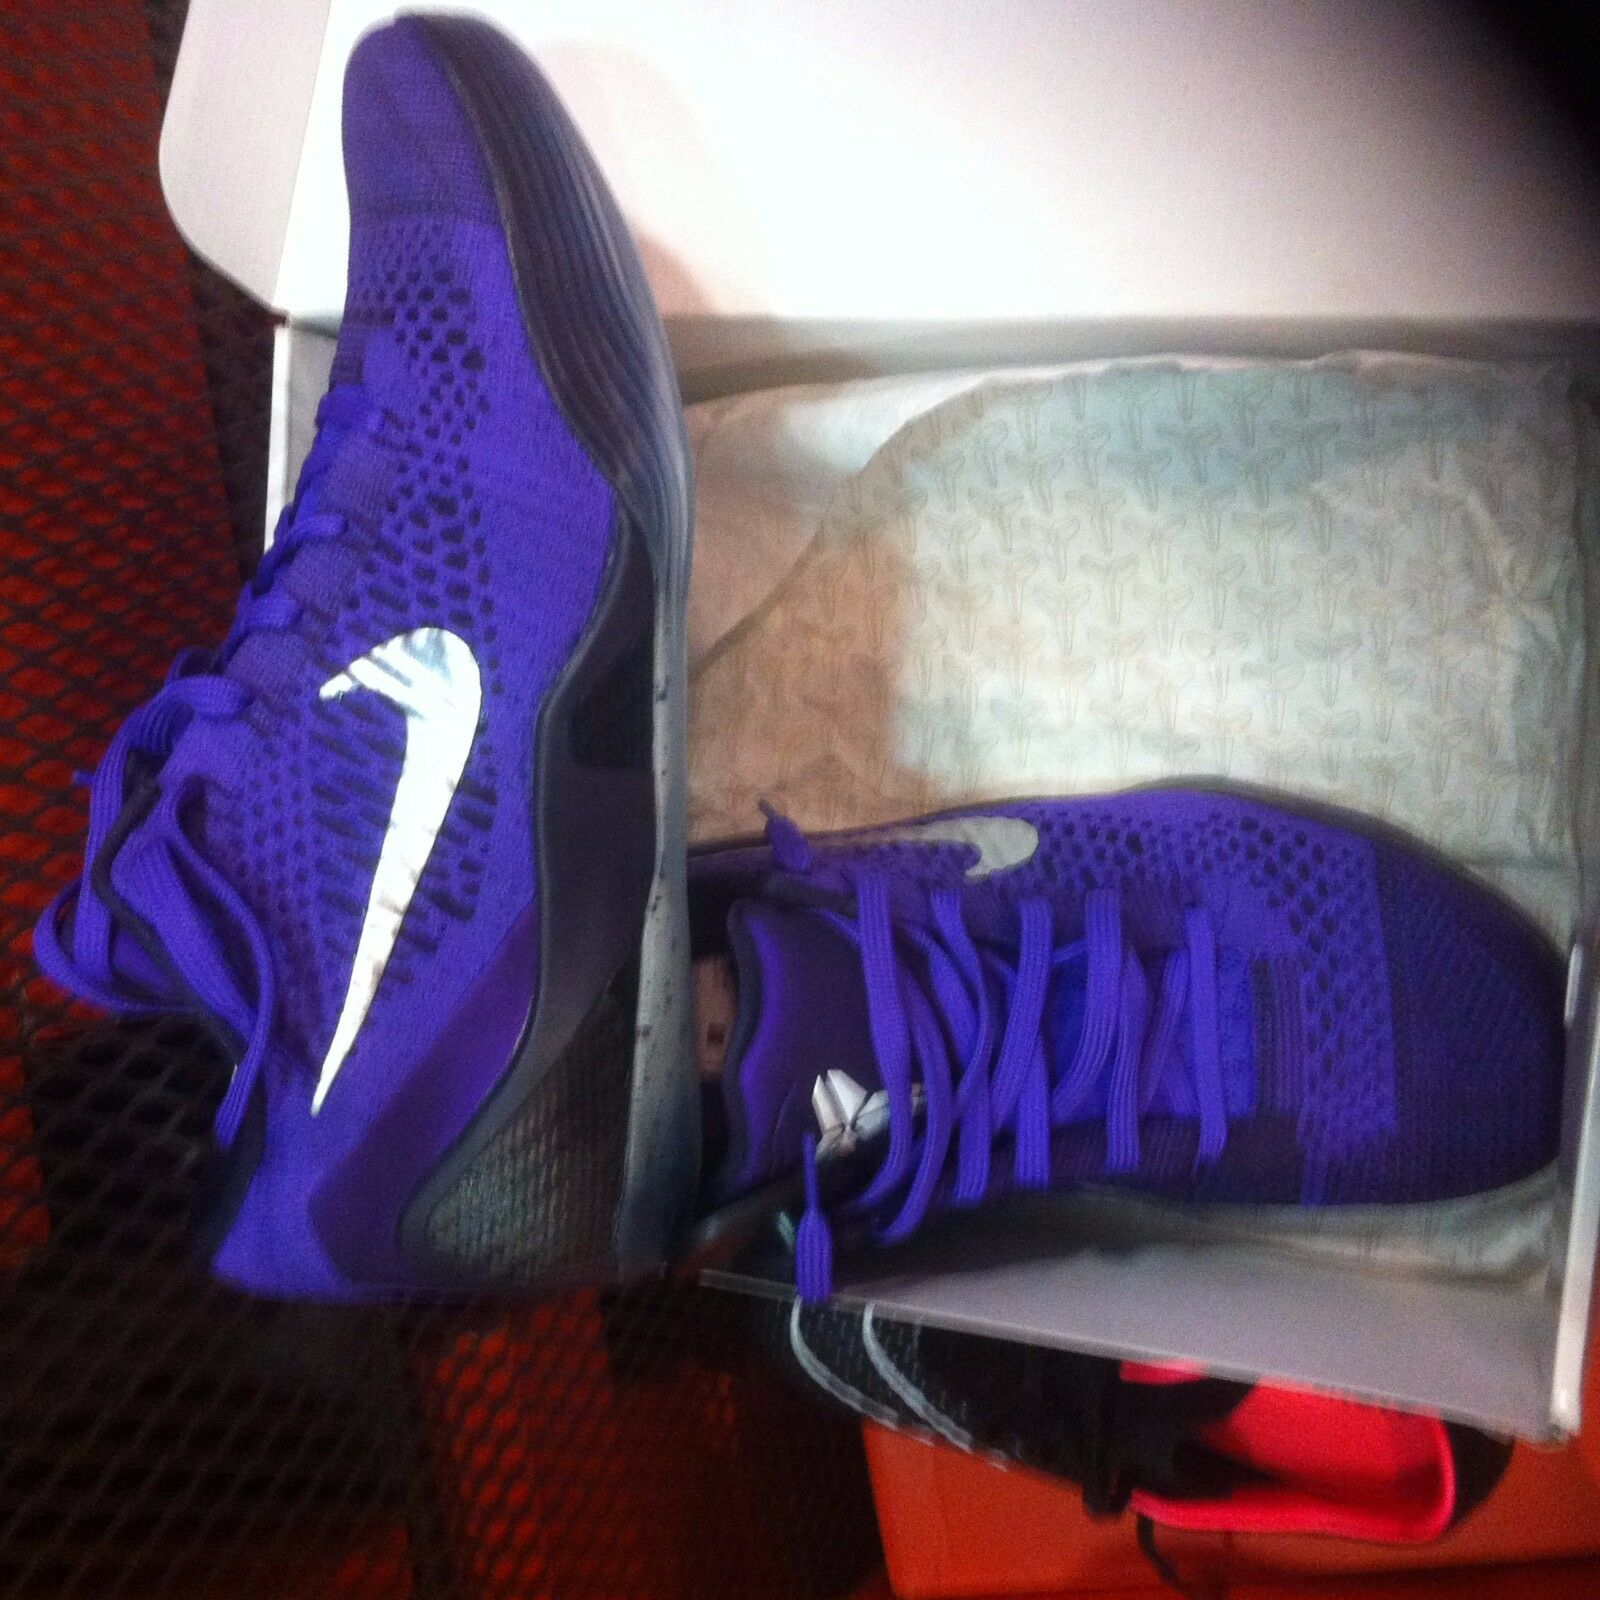 kobe bryant IX elite low moonwalker / michael jacksons